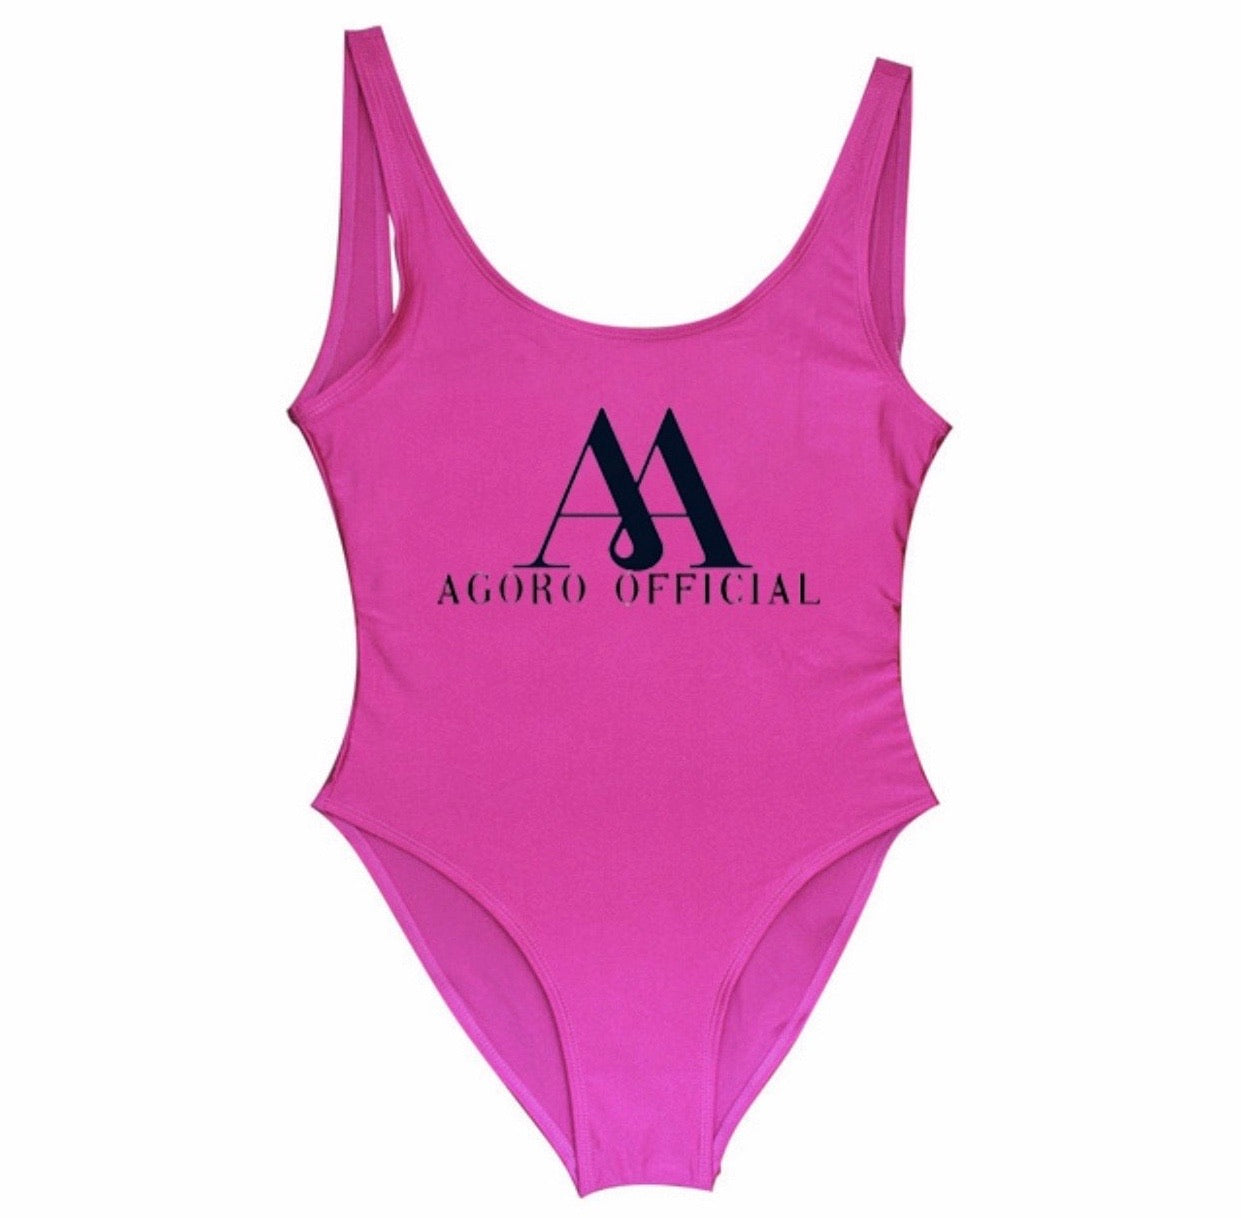 Agoro Official Discontinued One Piece